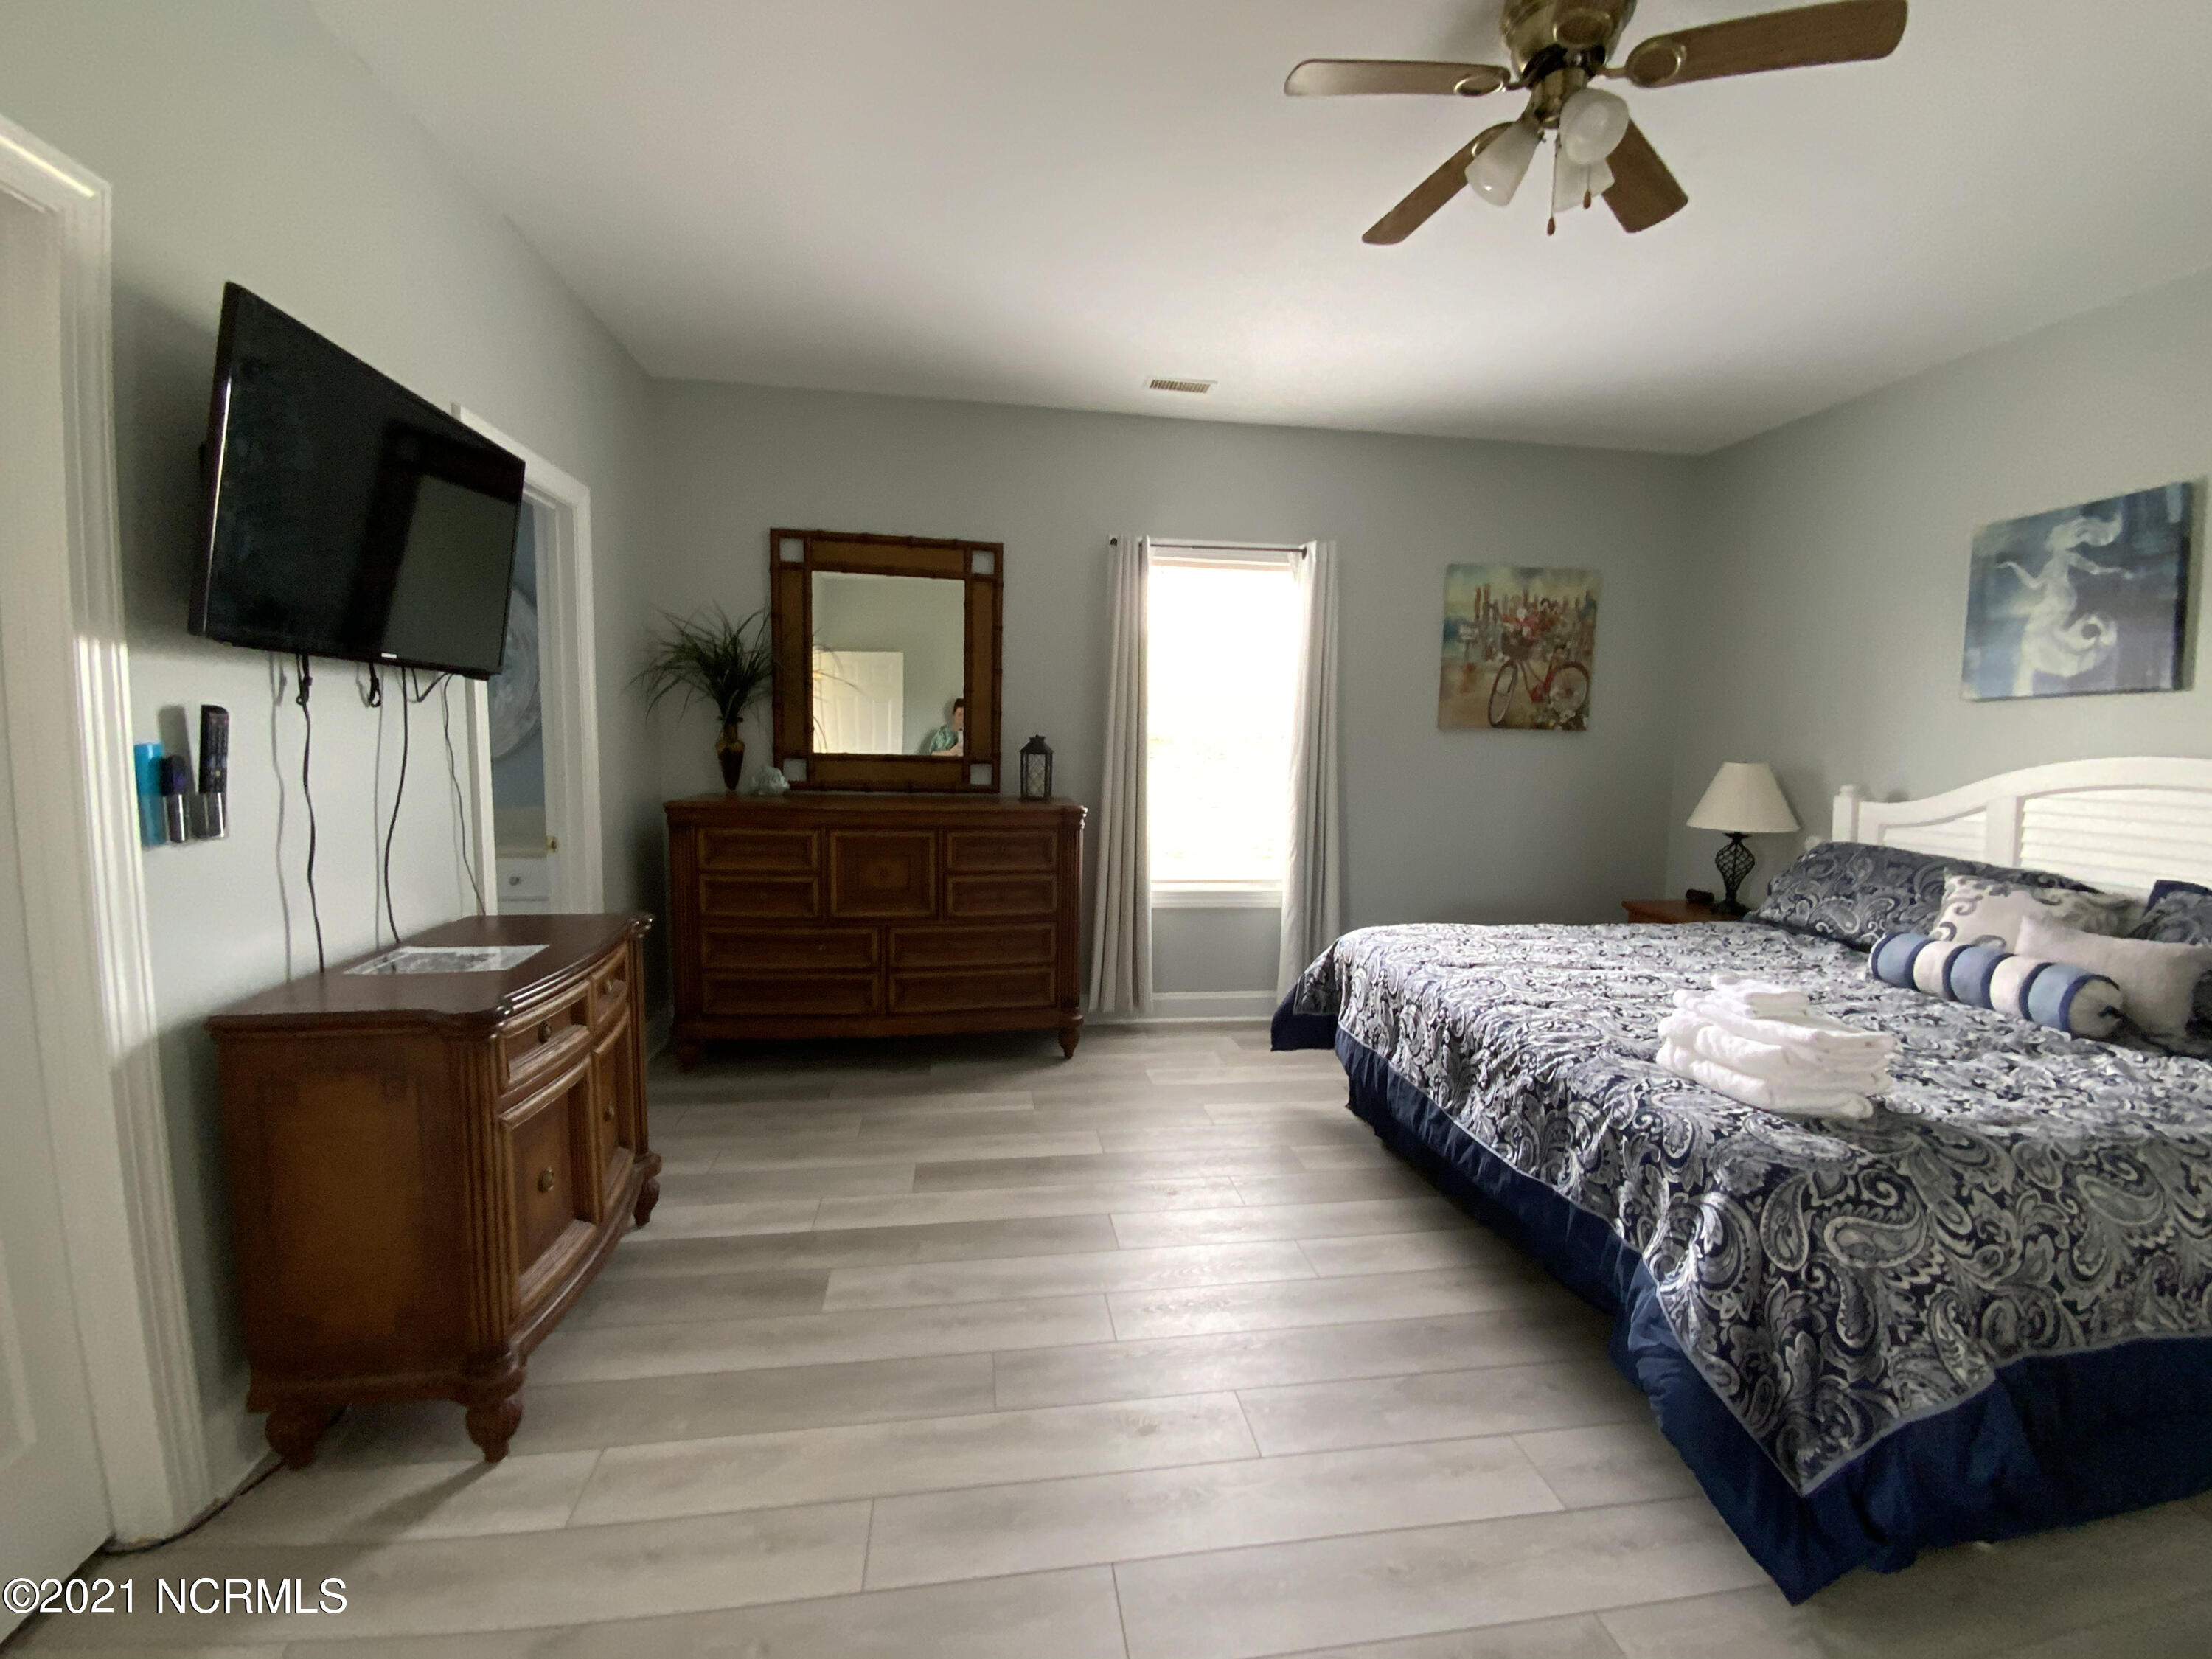 701 Salter Path Road, Salter Path, North Carolina 28512, 5 Bedrooms Bedrooms, 9 Rooms Rooms,5 BathroomsBathrooms,Single family residence,For sale,Salter Path,100278367